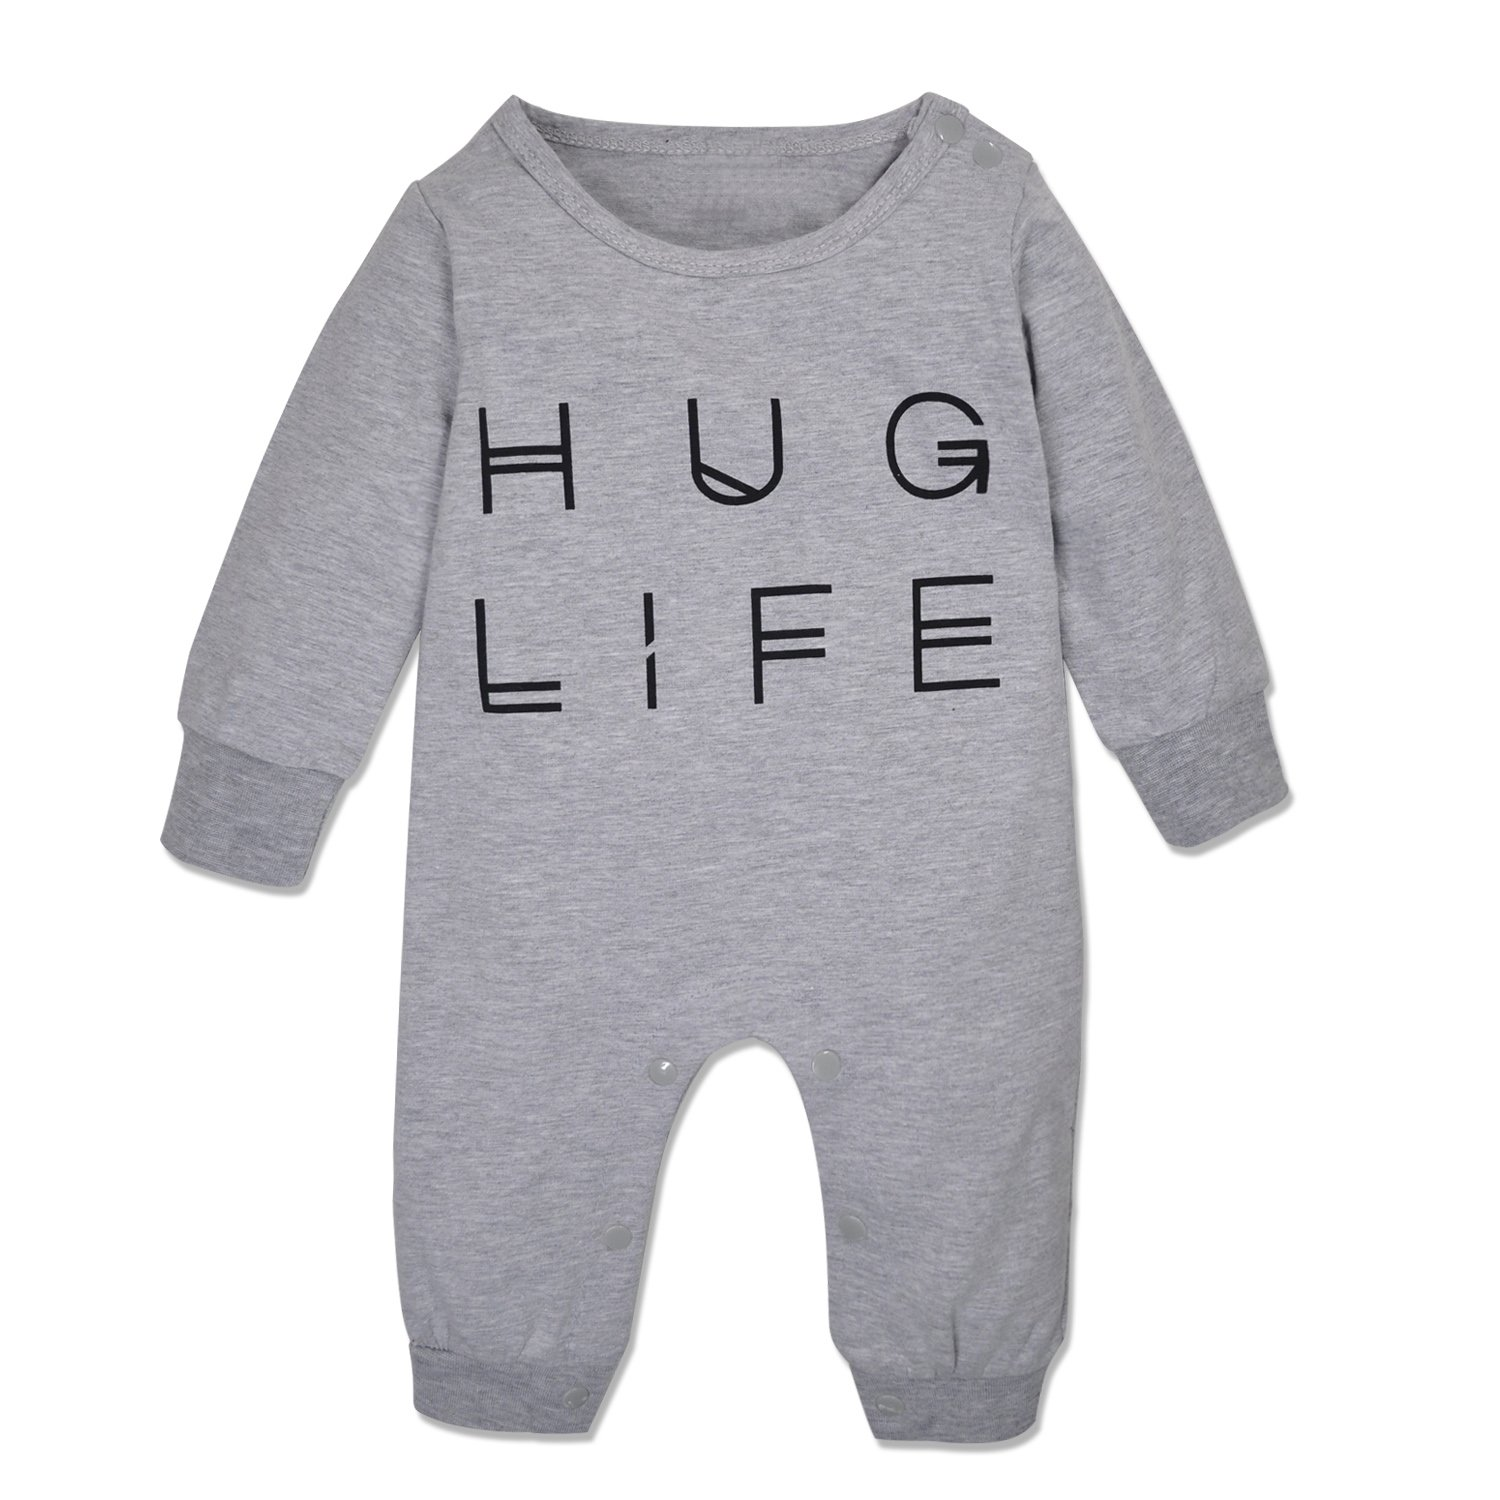 Minilove Boys Girls Embroidery Long Sleeve Striped Clothing Set